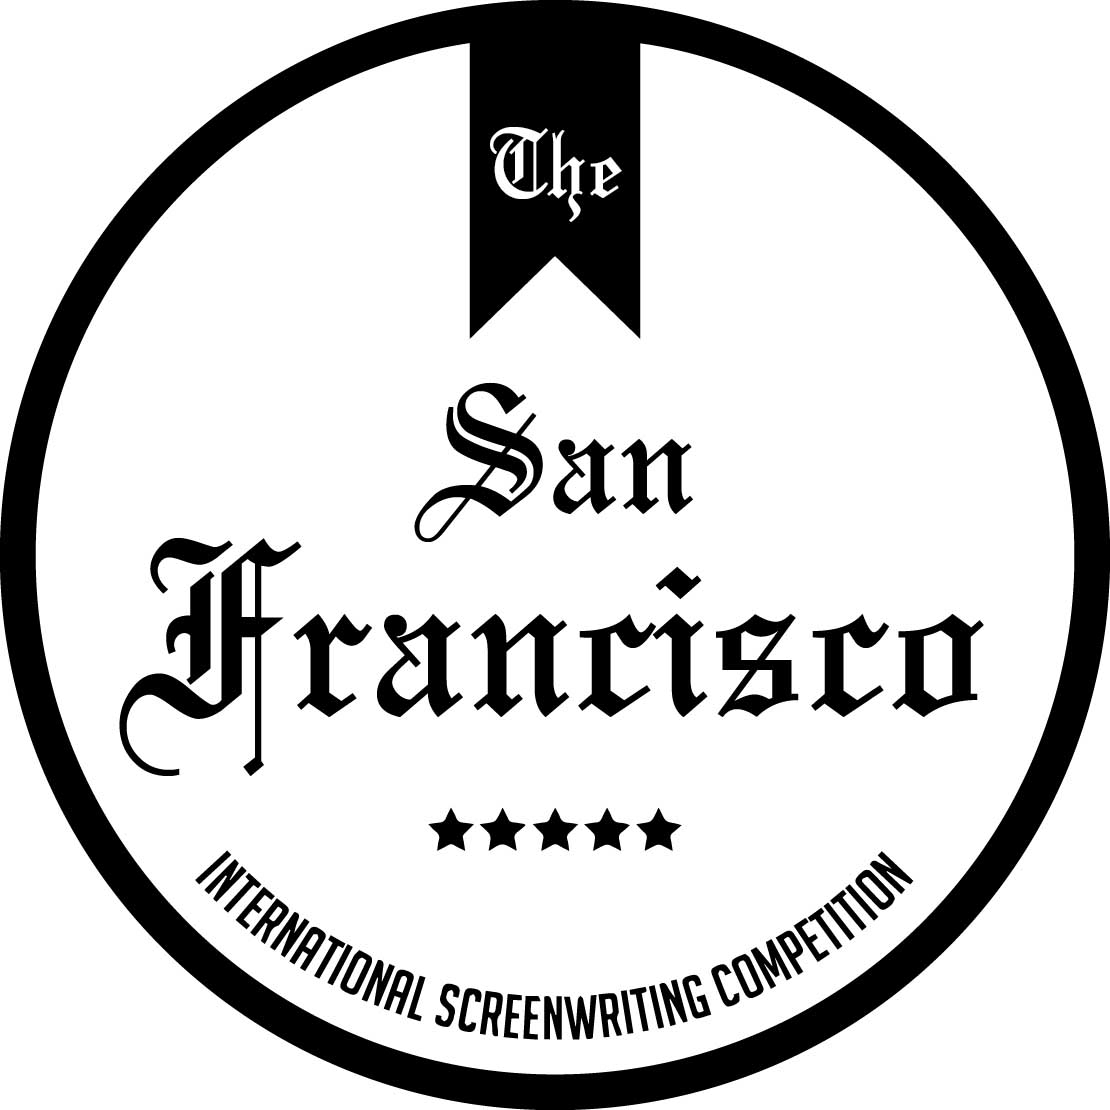 If you're serious about writing an award-winning script, The San Francisco International Screenwriting Competition is the perfect competition for you.